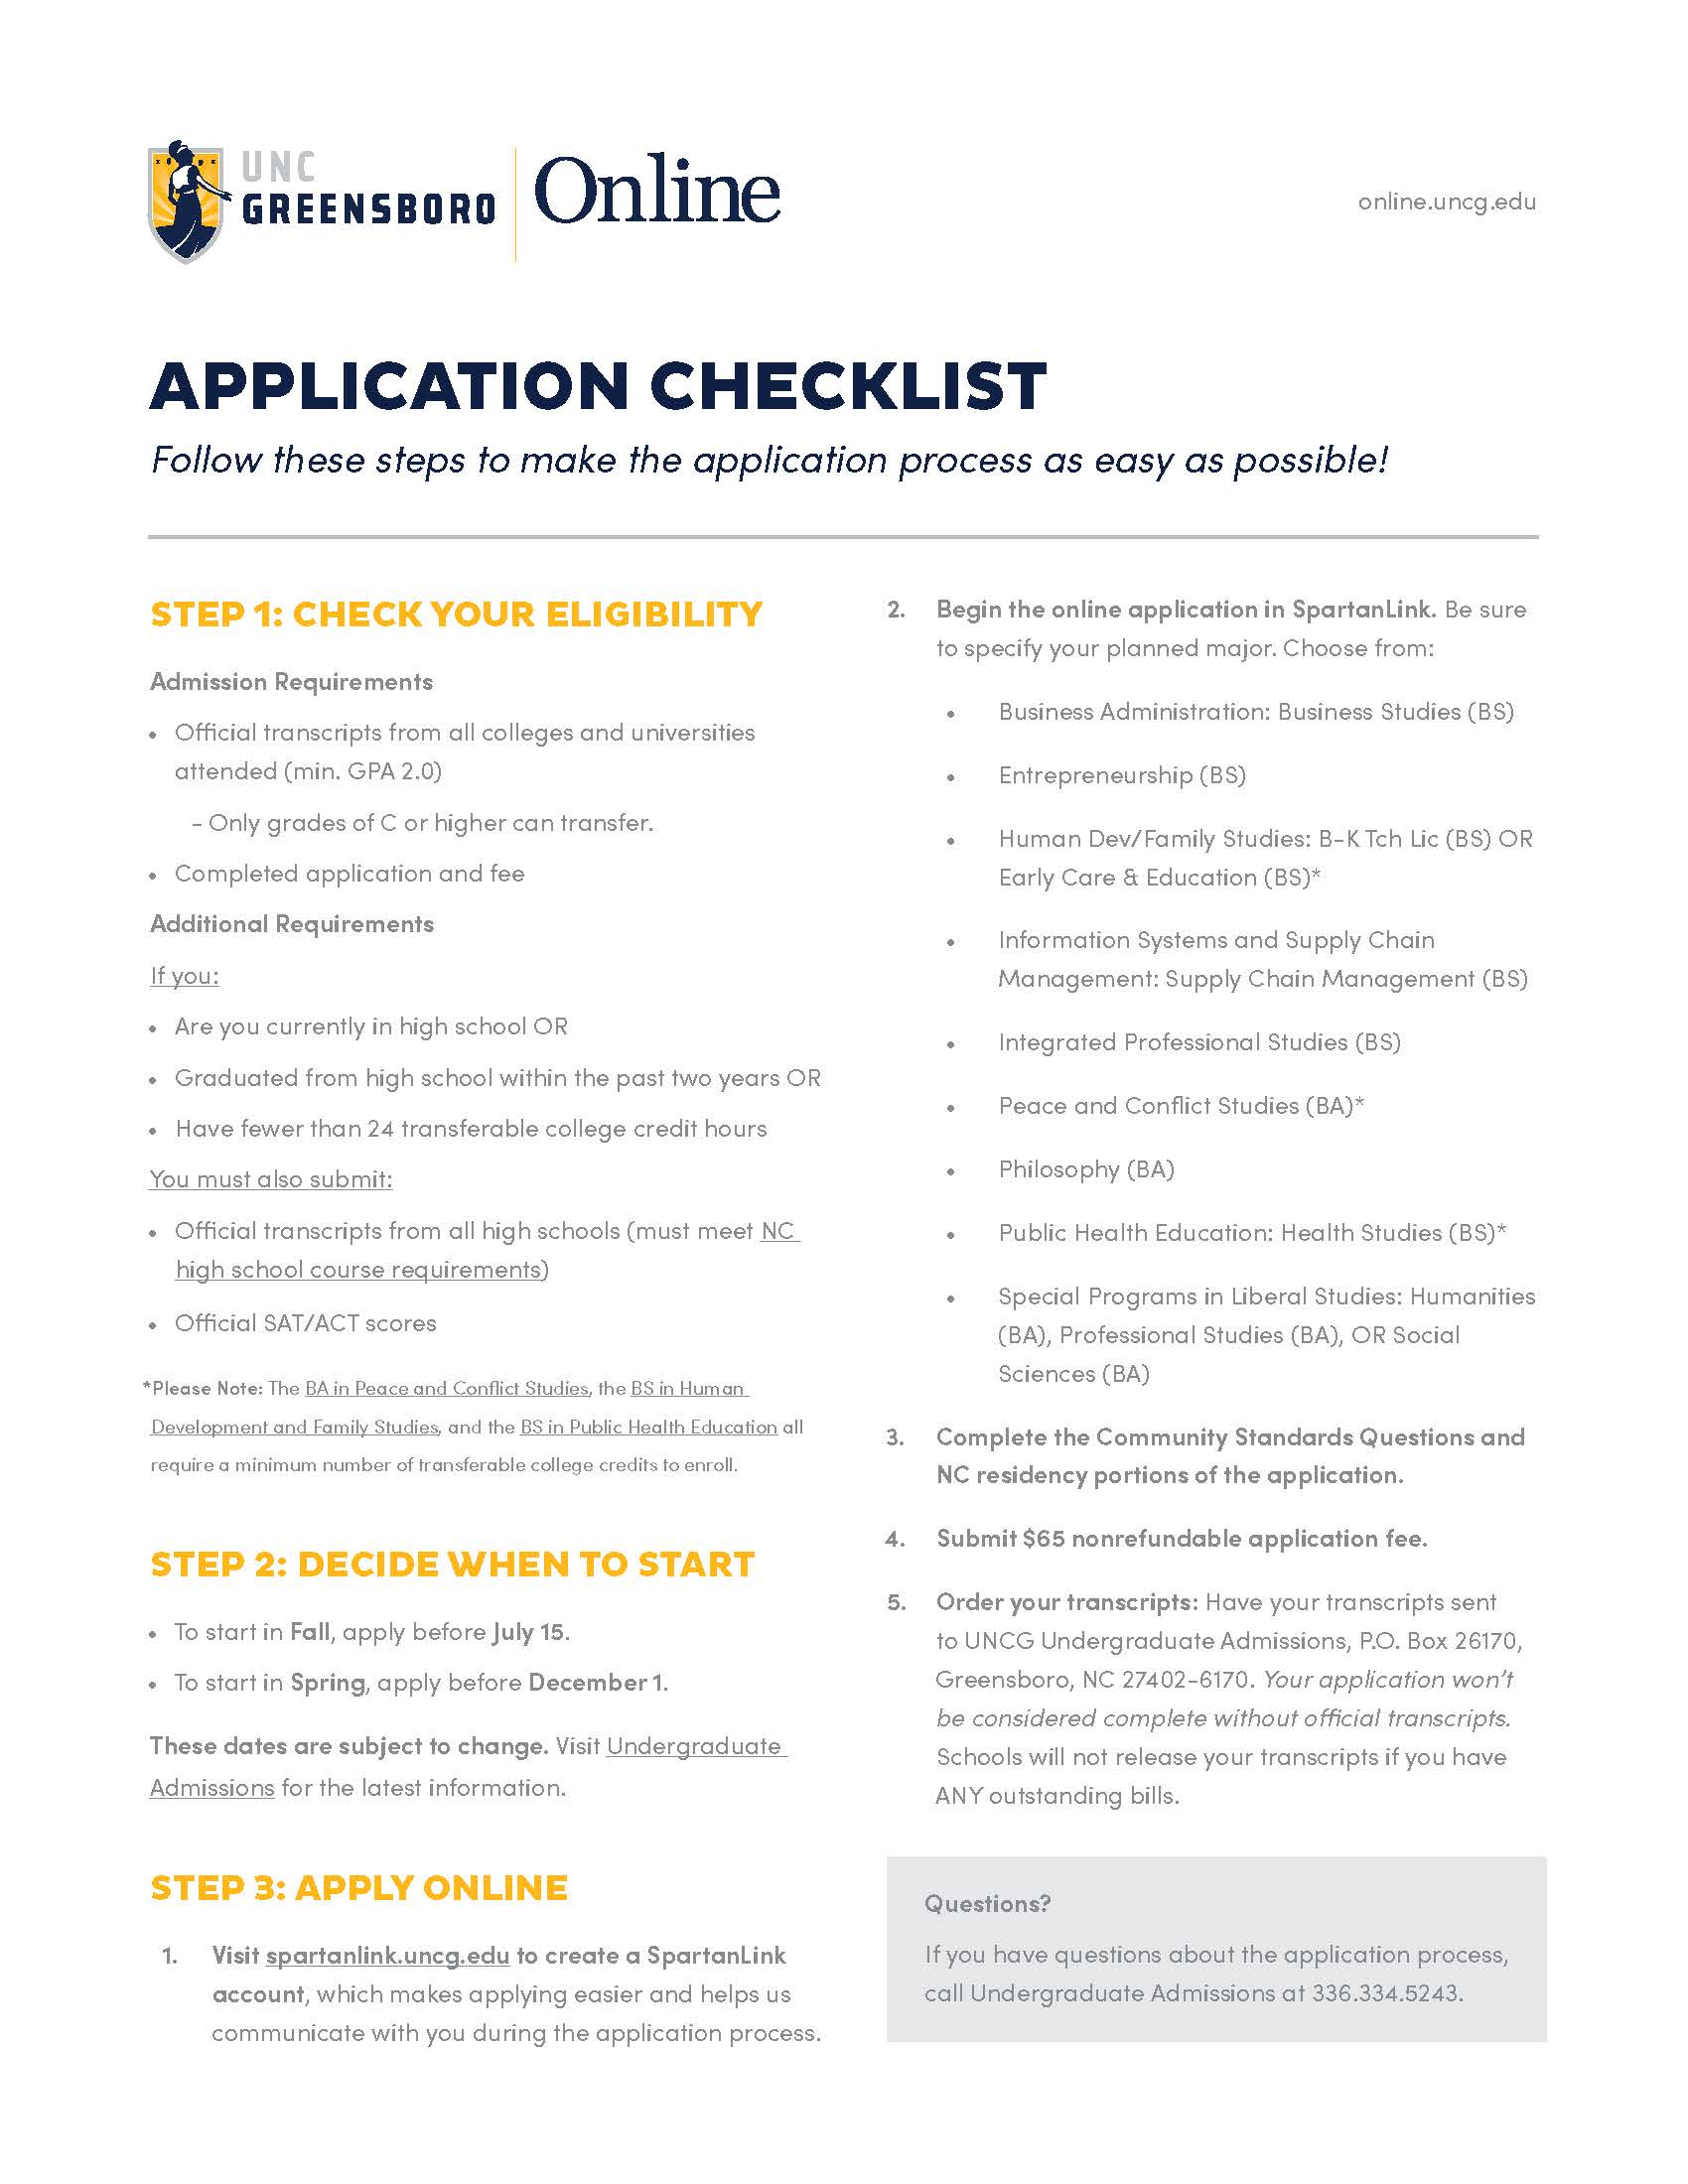 UO UG Application Checklist Thumb